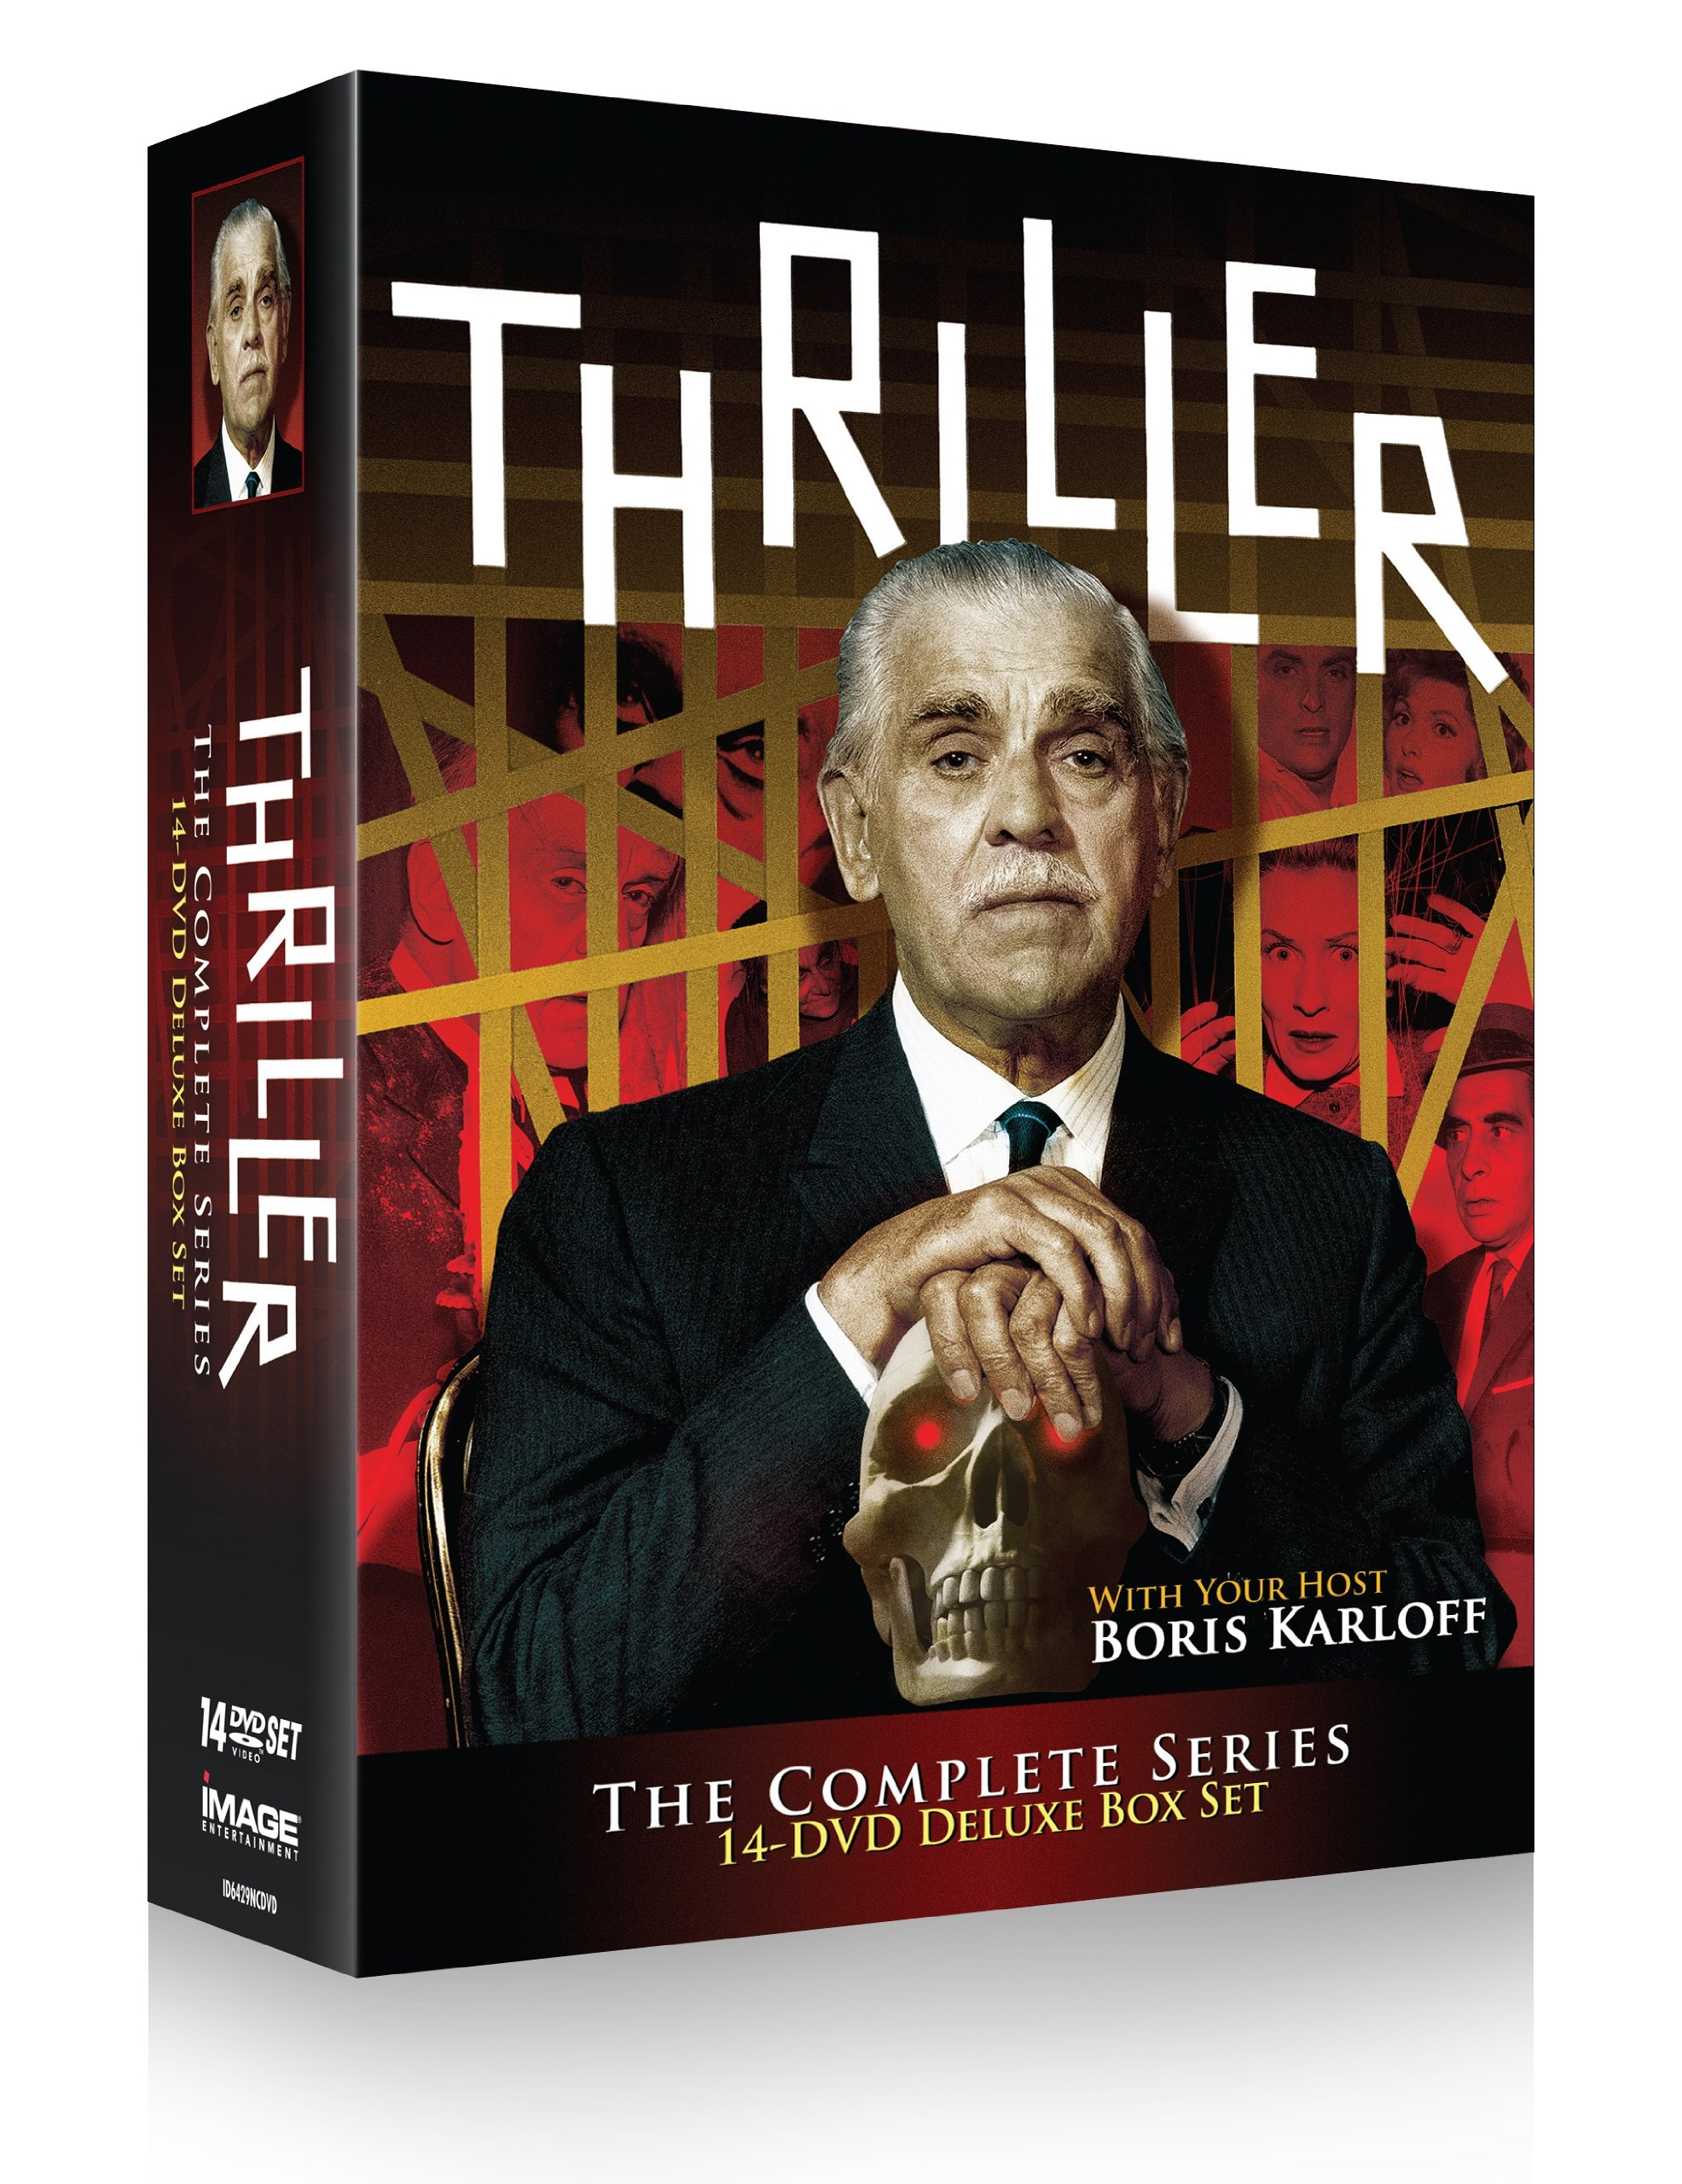 Thriller: The Complete Series by Image Entertainment